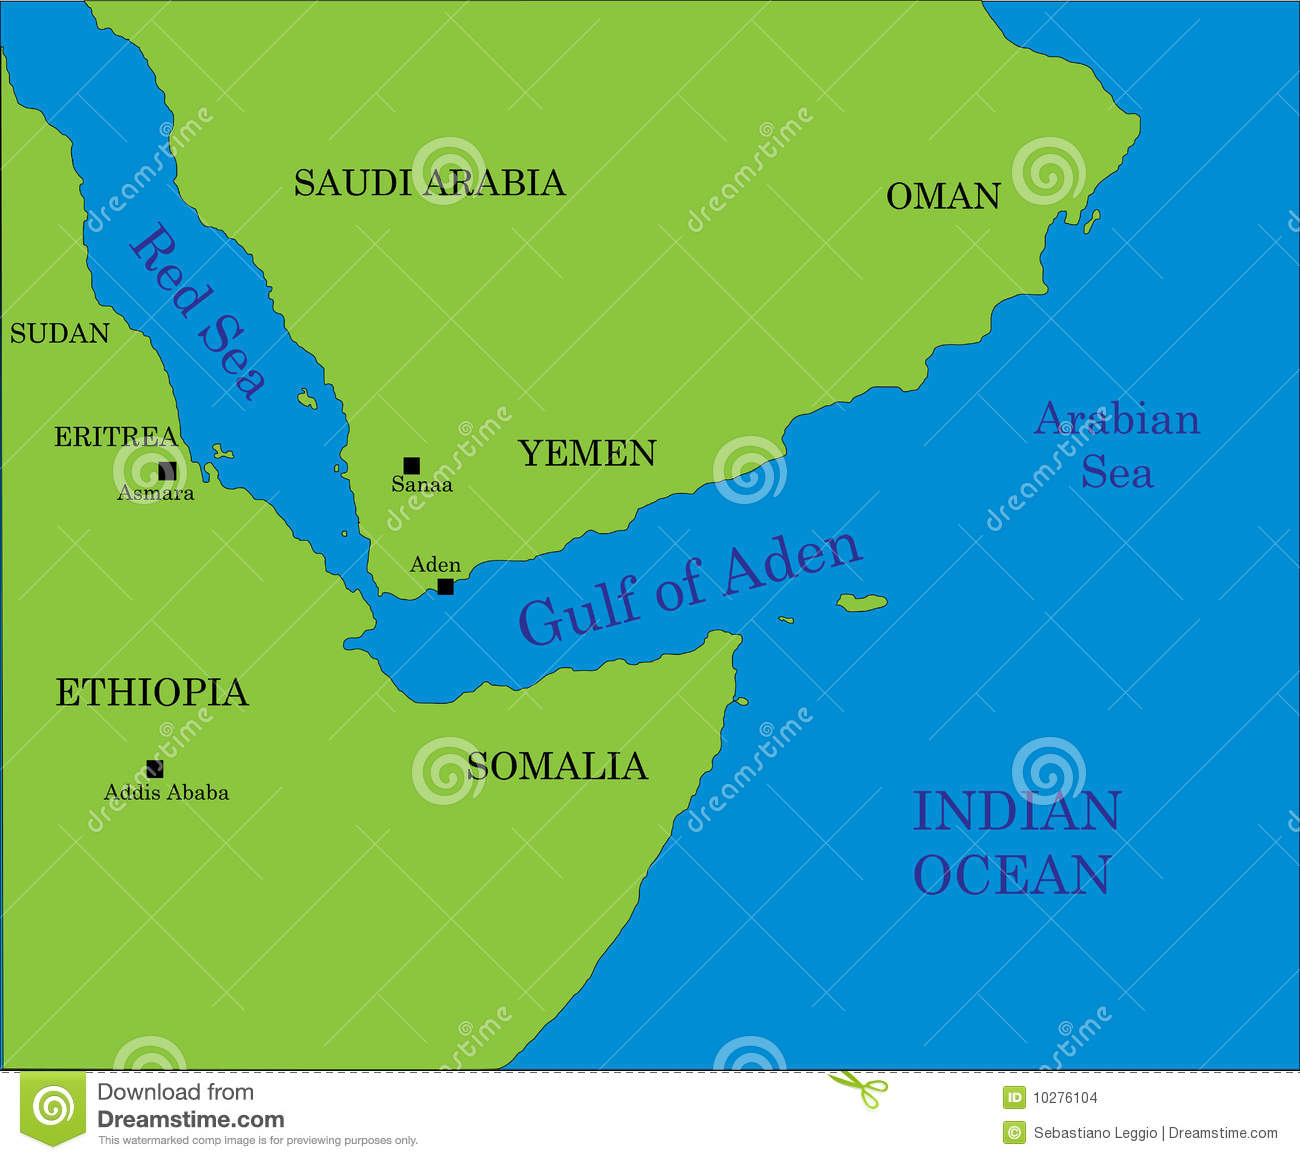 Gulf of Aden map stock vector. Illustration of arabia - 10276104